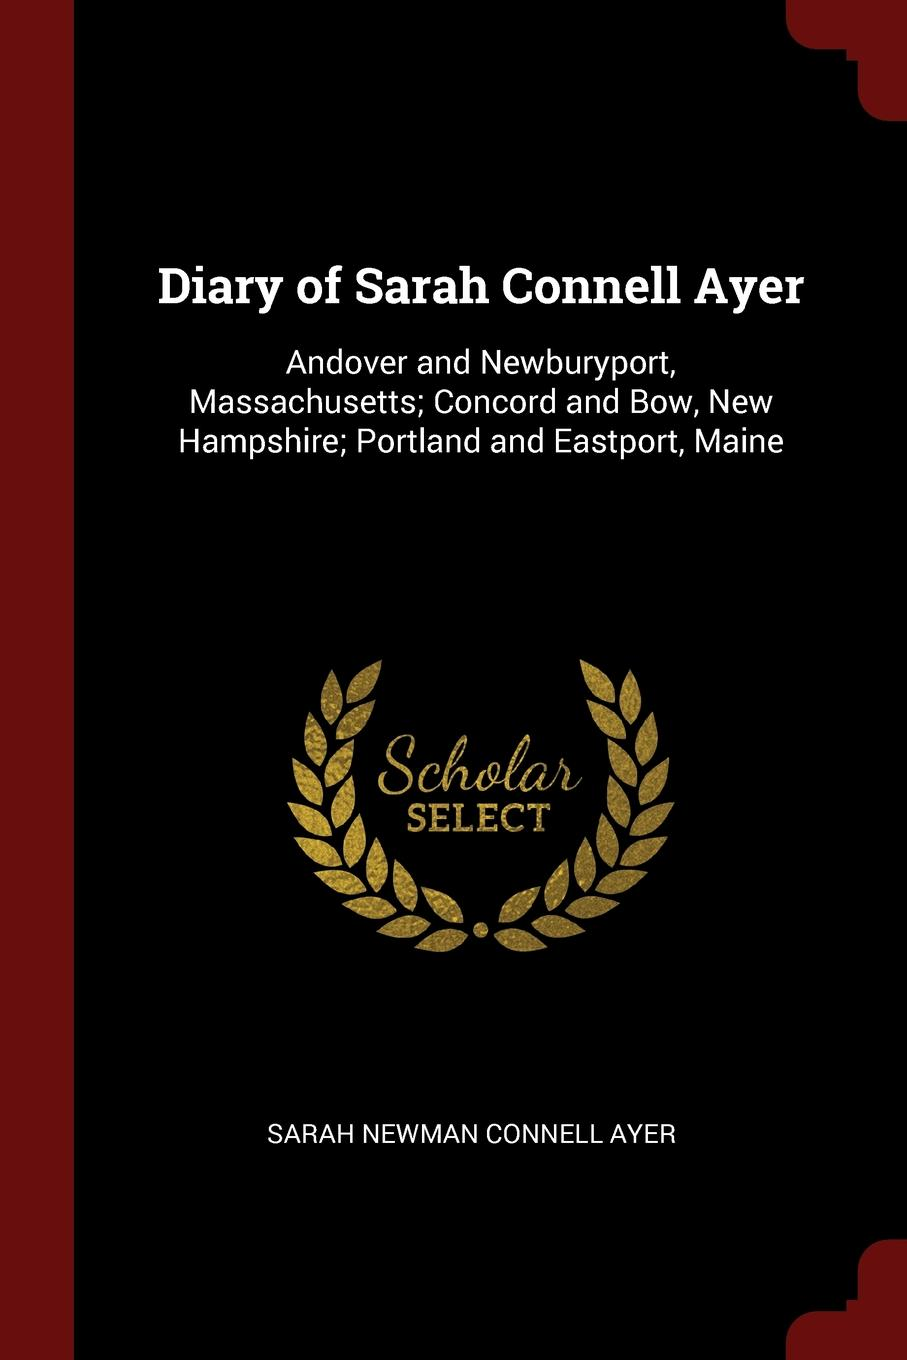 Sarah Newman Connell Ayer Diary of Sarah Connell Ayer. Andover and Newburyport, Massachusetts; Concord and Bow, New Hampshire; Portland and Eastport, Maine new and original zd 70n optex photoelectric switch photoelectric sensor npn output